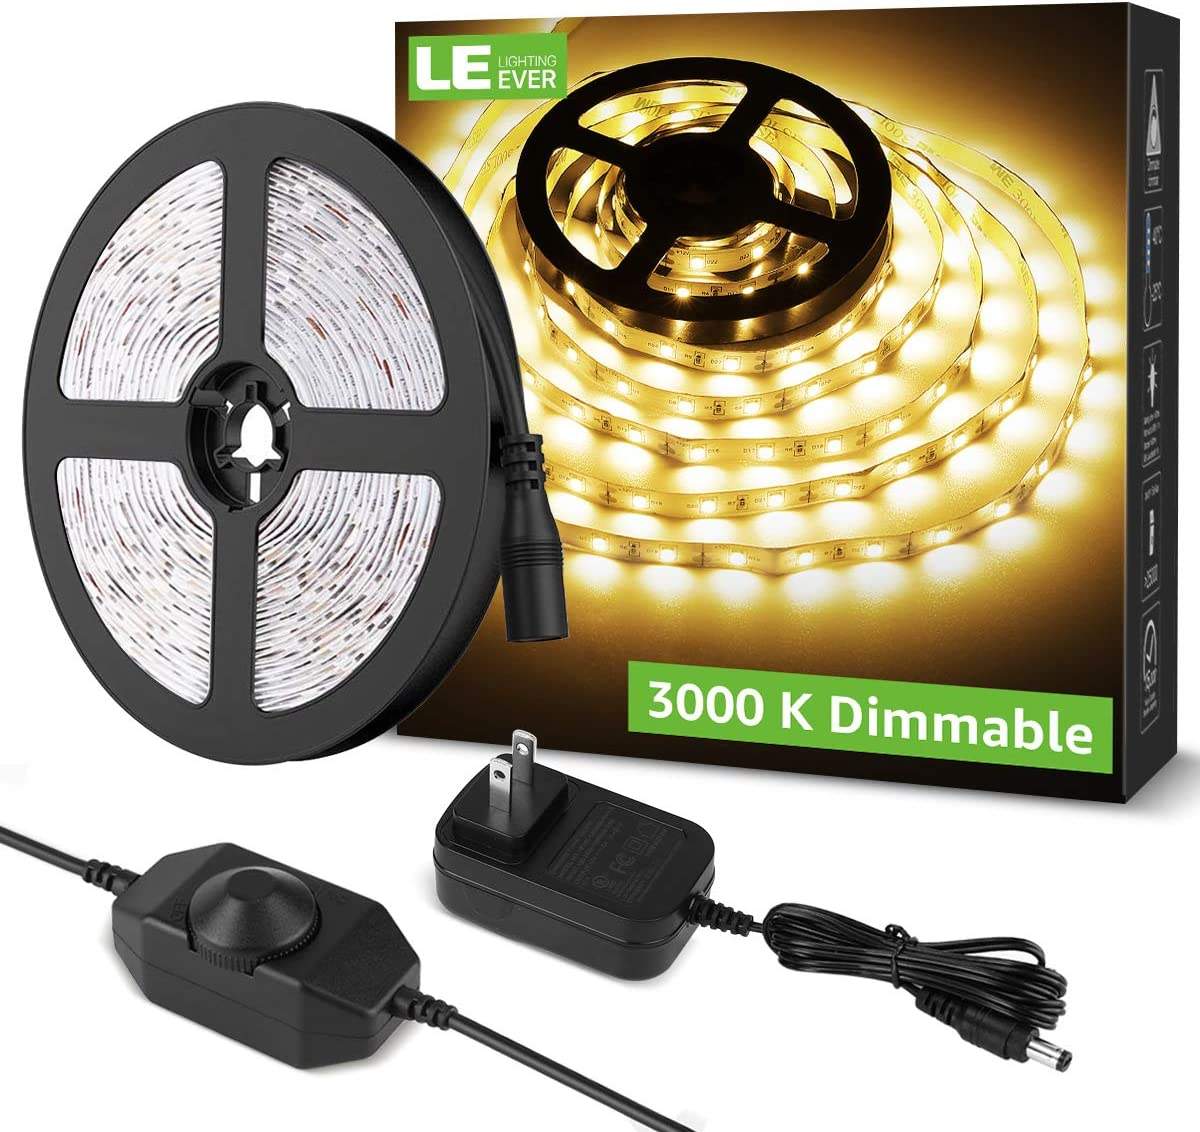 LE LED Strip Light White, 16.4ft Dimmable Vanity Lights, 6000K Super Bright LED Tape Lights, 300 LEDs SMD 2835, Strong 3M Adhesive, Suitable for Home, Kitchen, Under Cabinet, Bedroom, Warm White